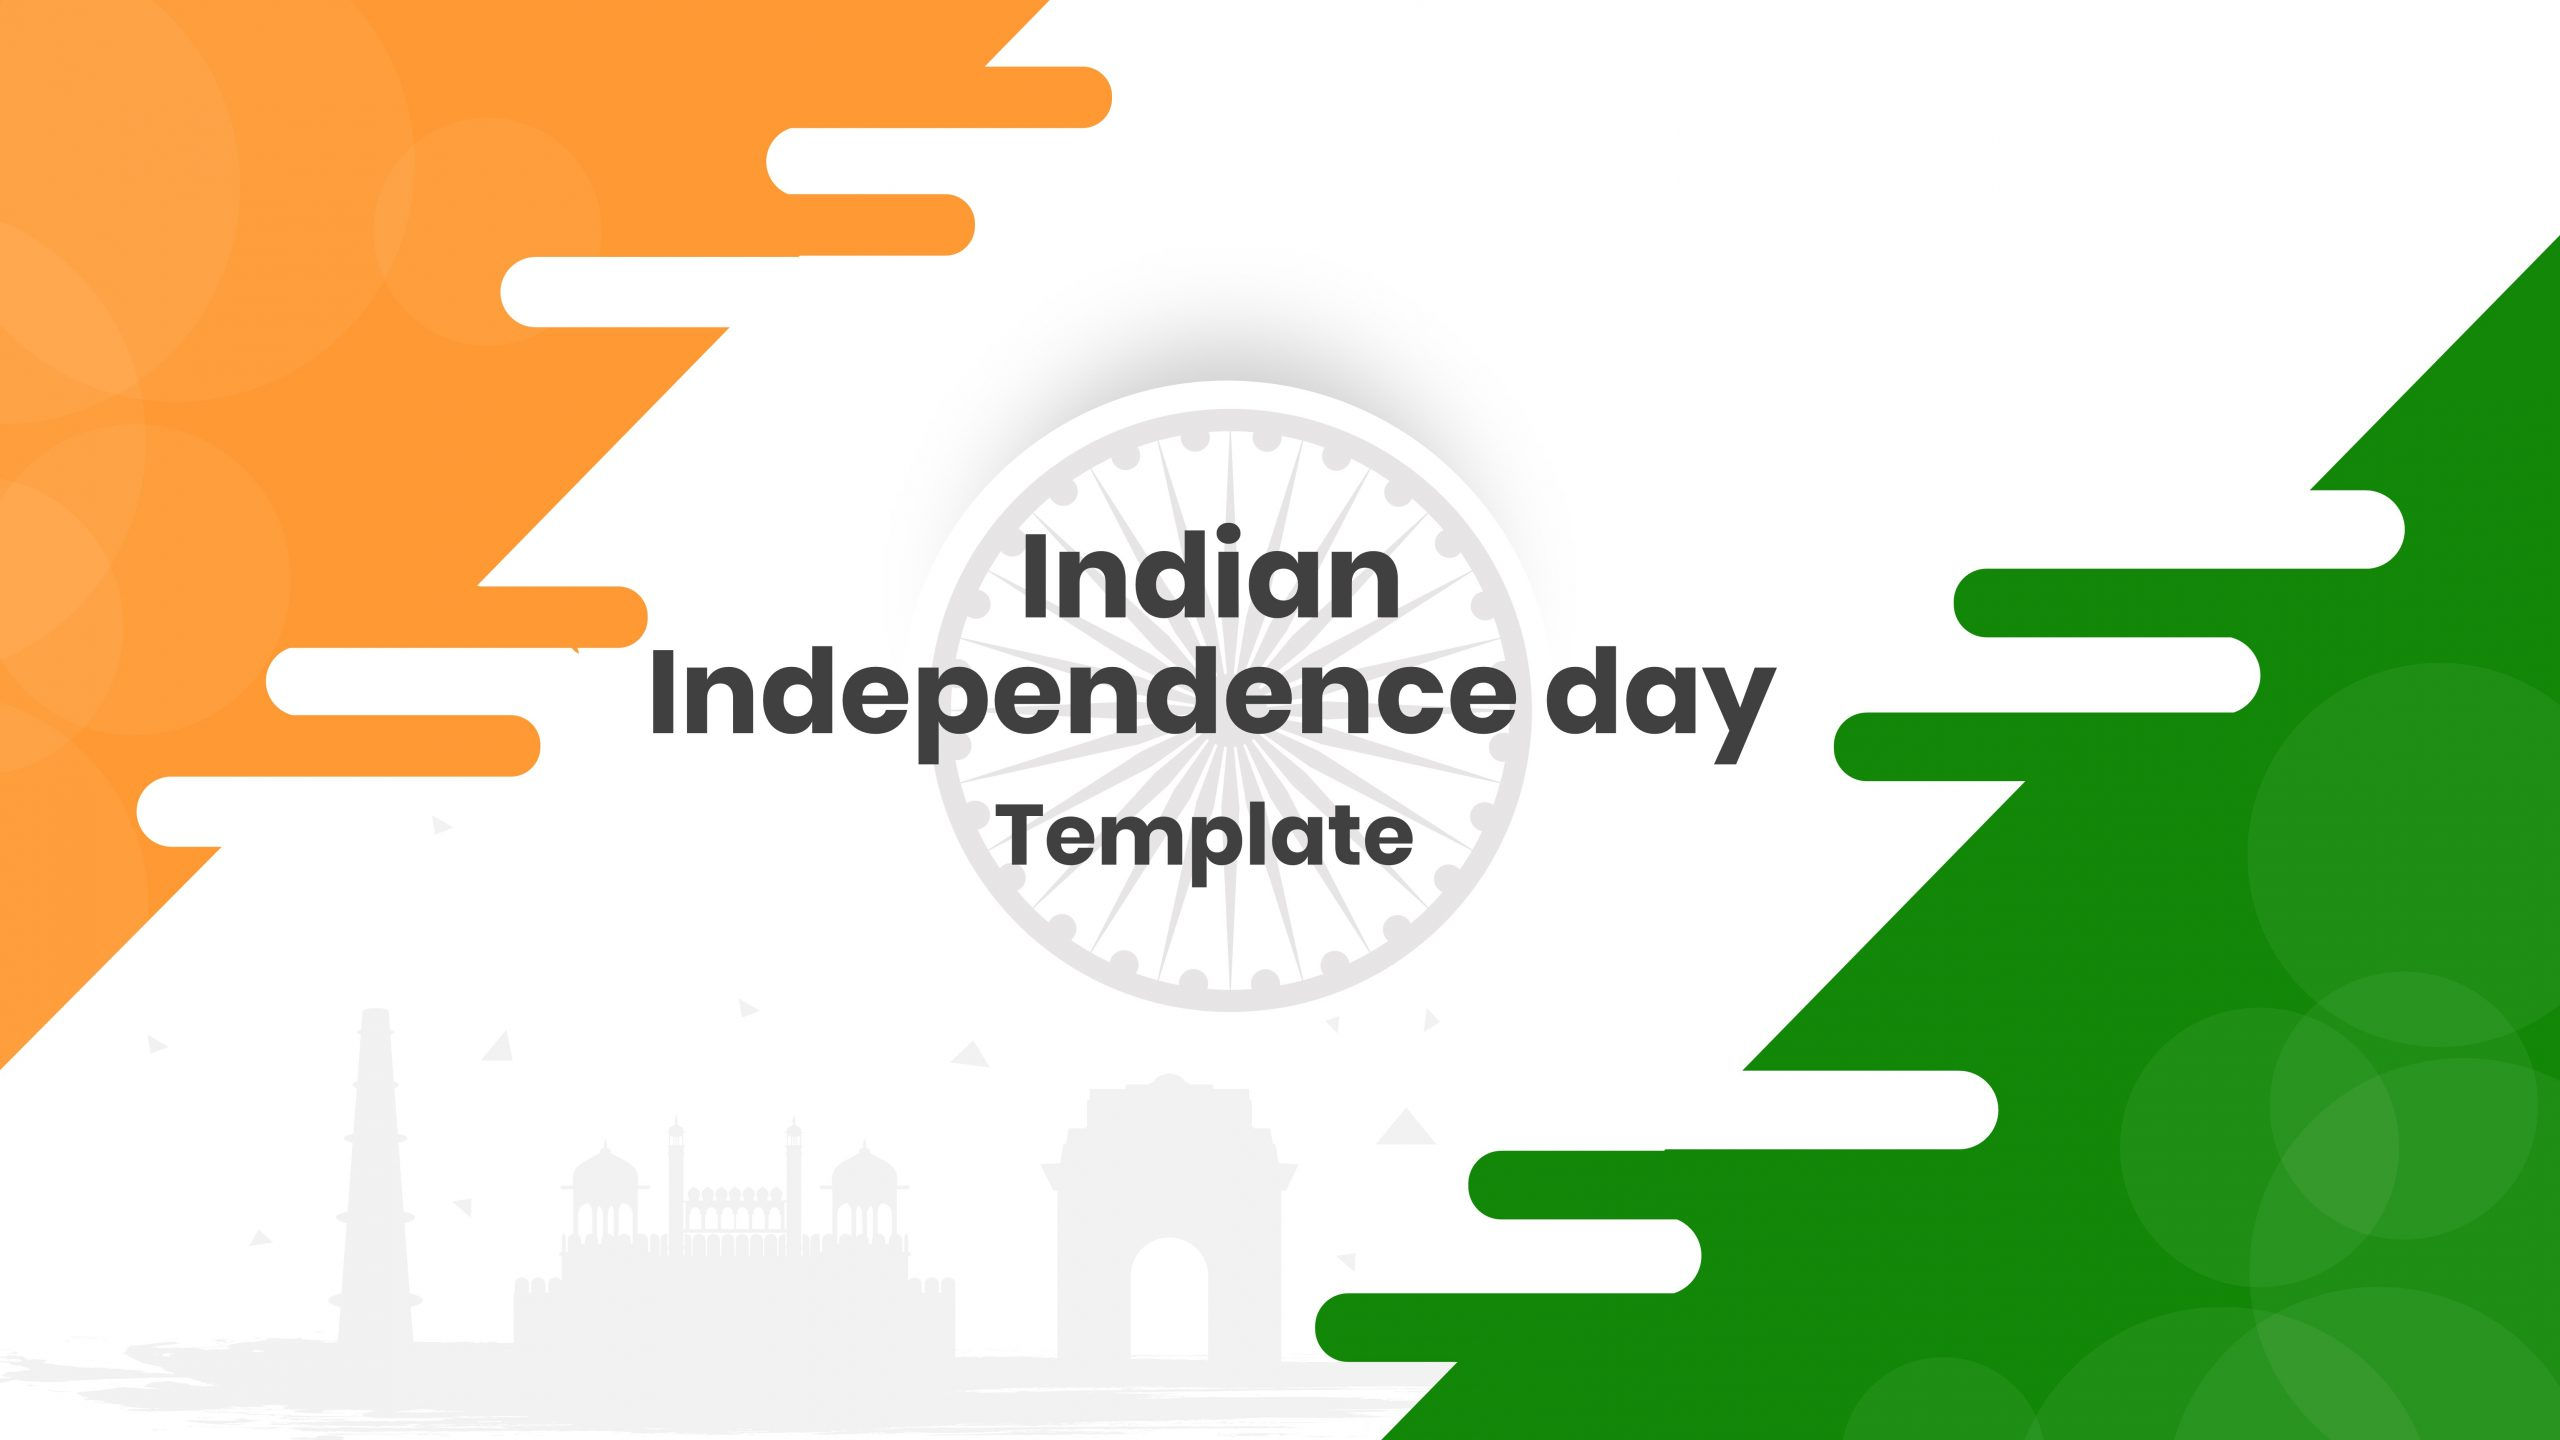 Indian Independence Day Template